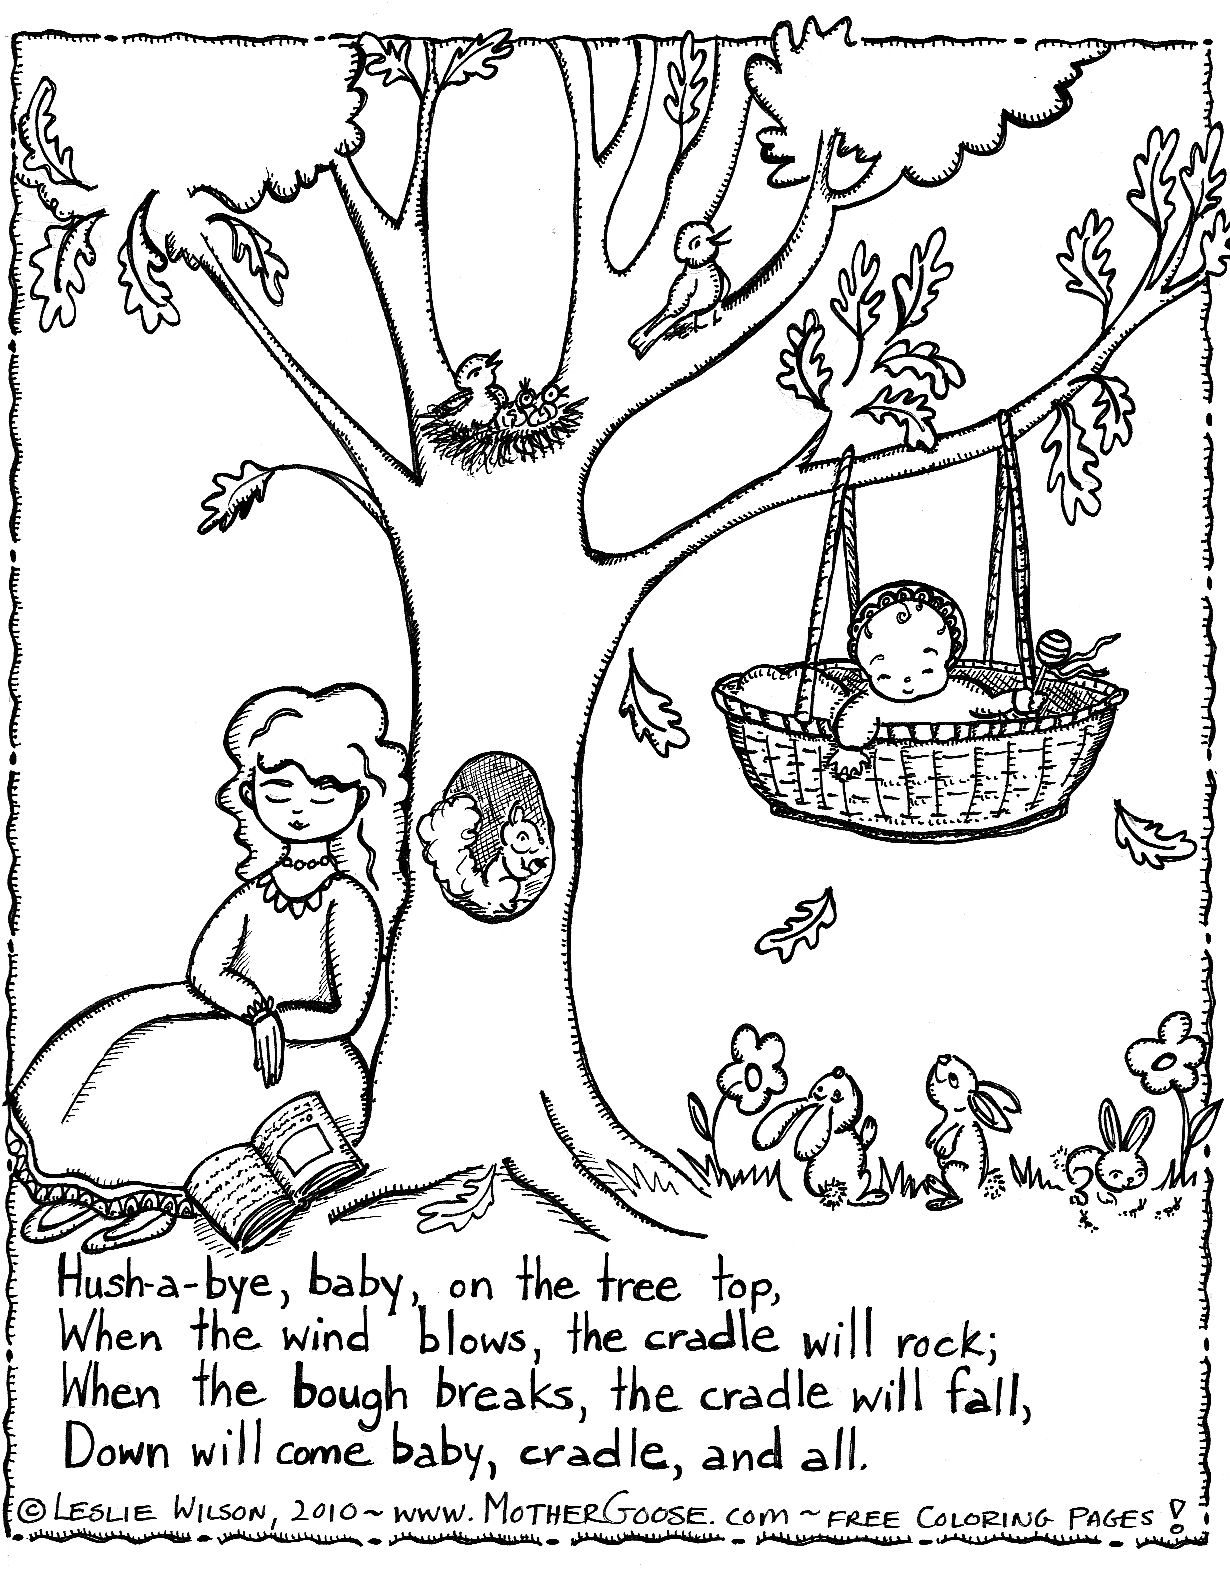 Nursery Rhyme Coloring Page | Teaching - Nursery Rhymes/mother Goose - Mother Goose Coloring Pages Free Printable